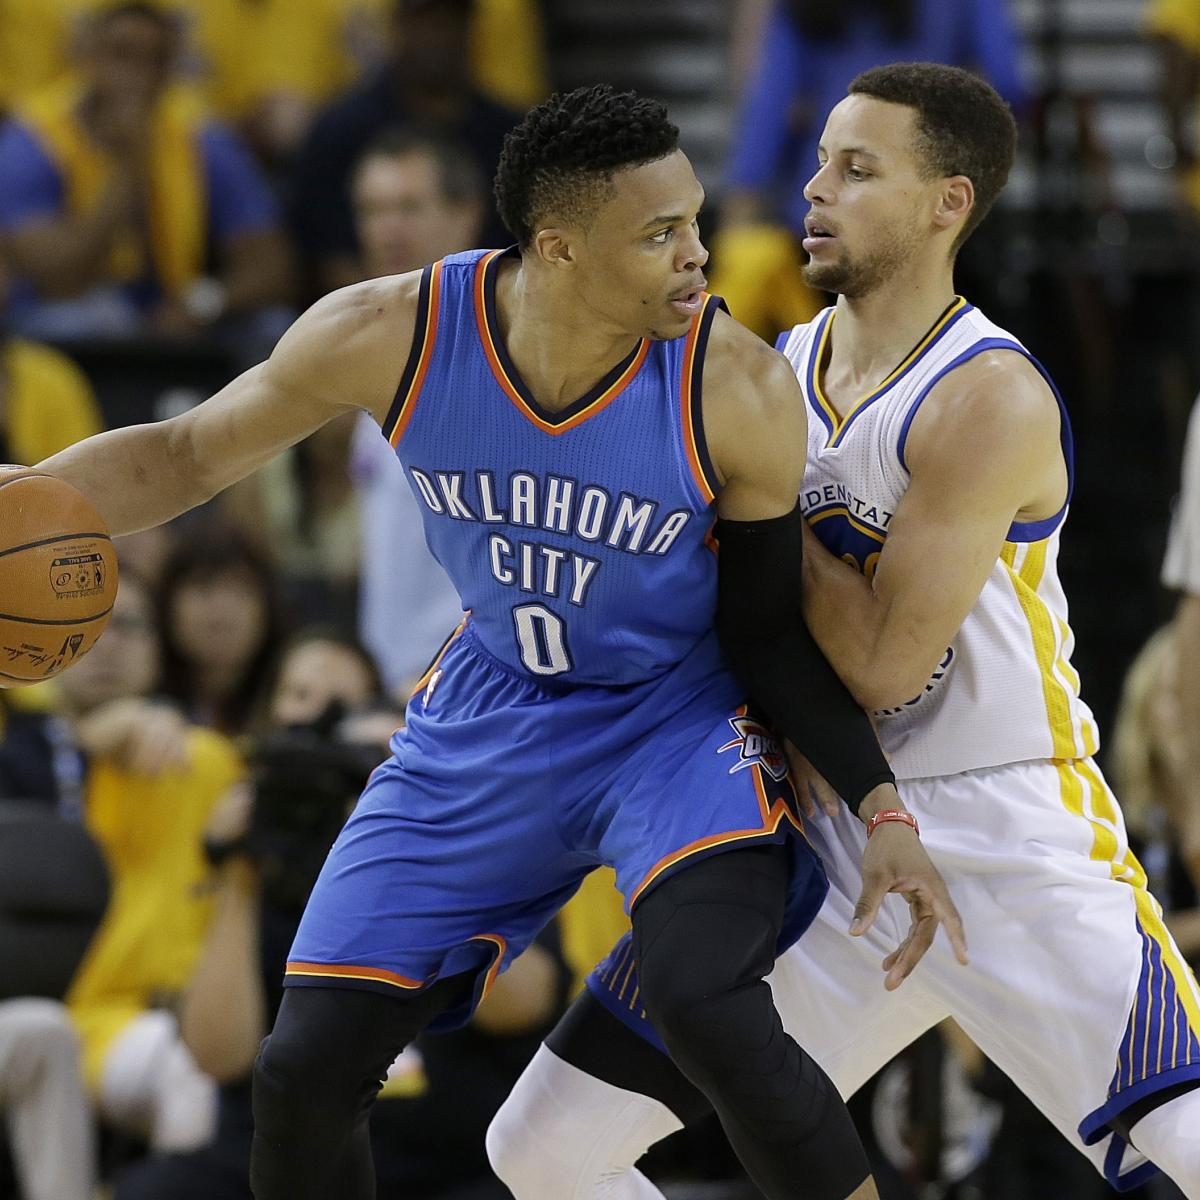 Warriors Game Broadcast Tv: Thunder Vs. Warriors Game 7 Was NBA's Highest-Rated Game